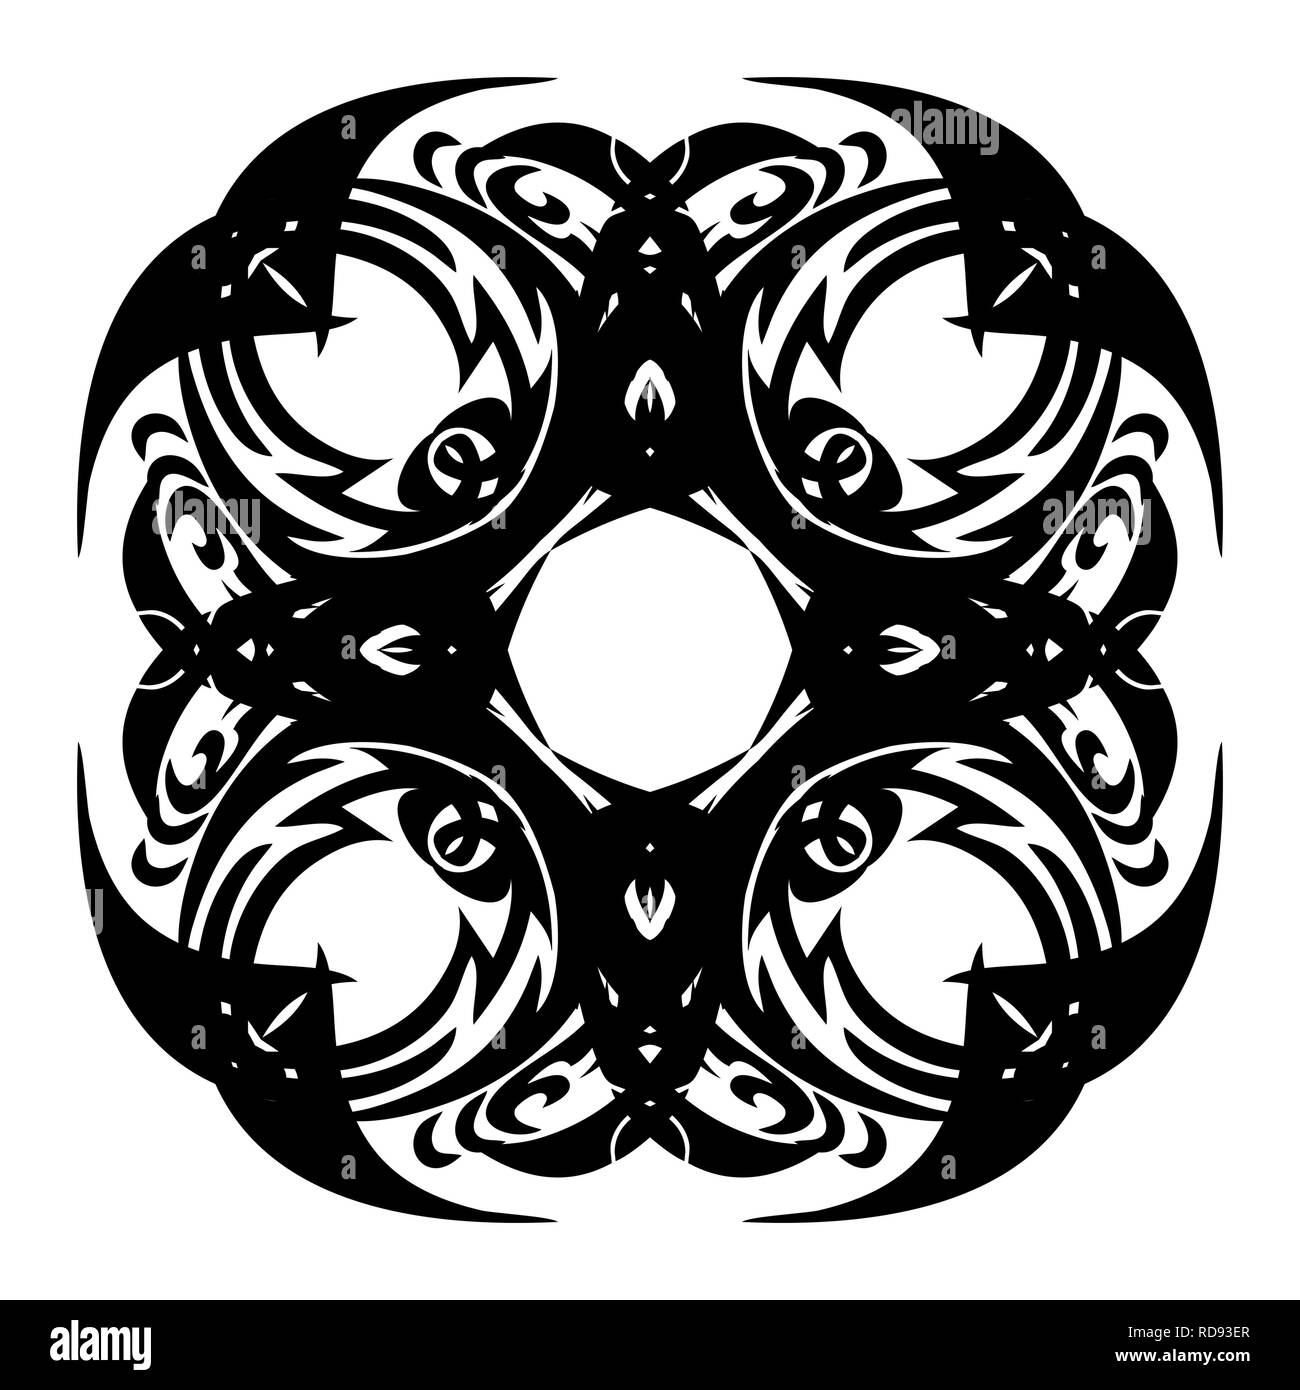 a8488aca4 Abstract mandala with black elements on a white background. - Stock Image